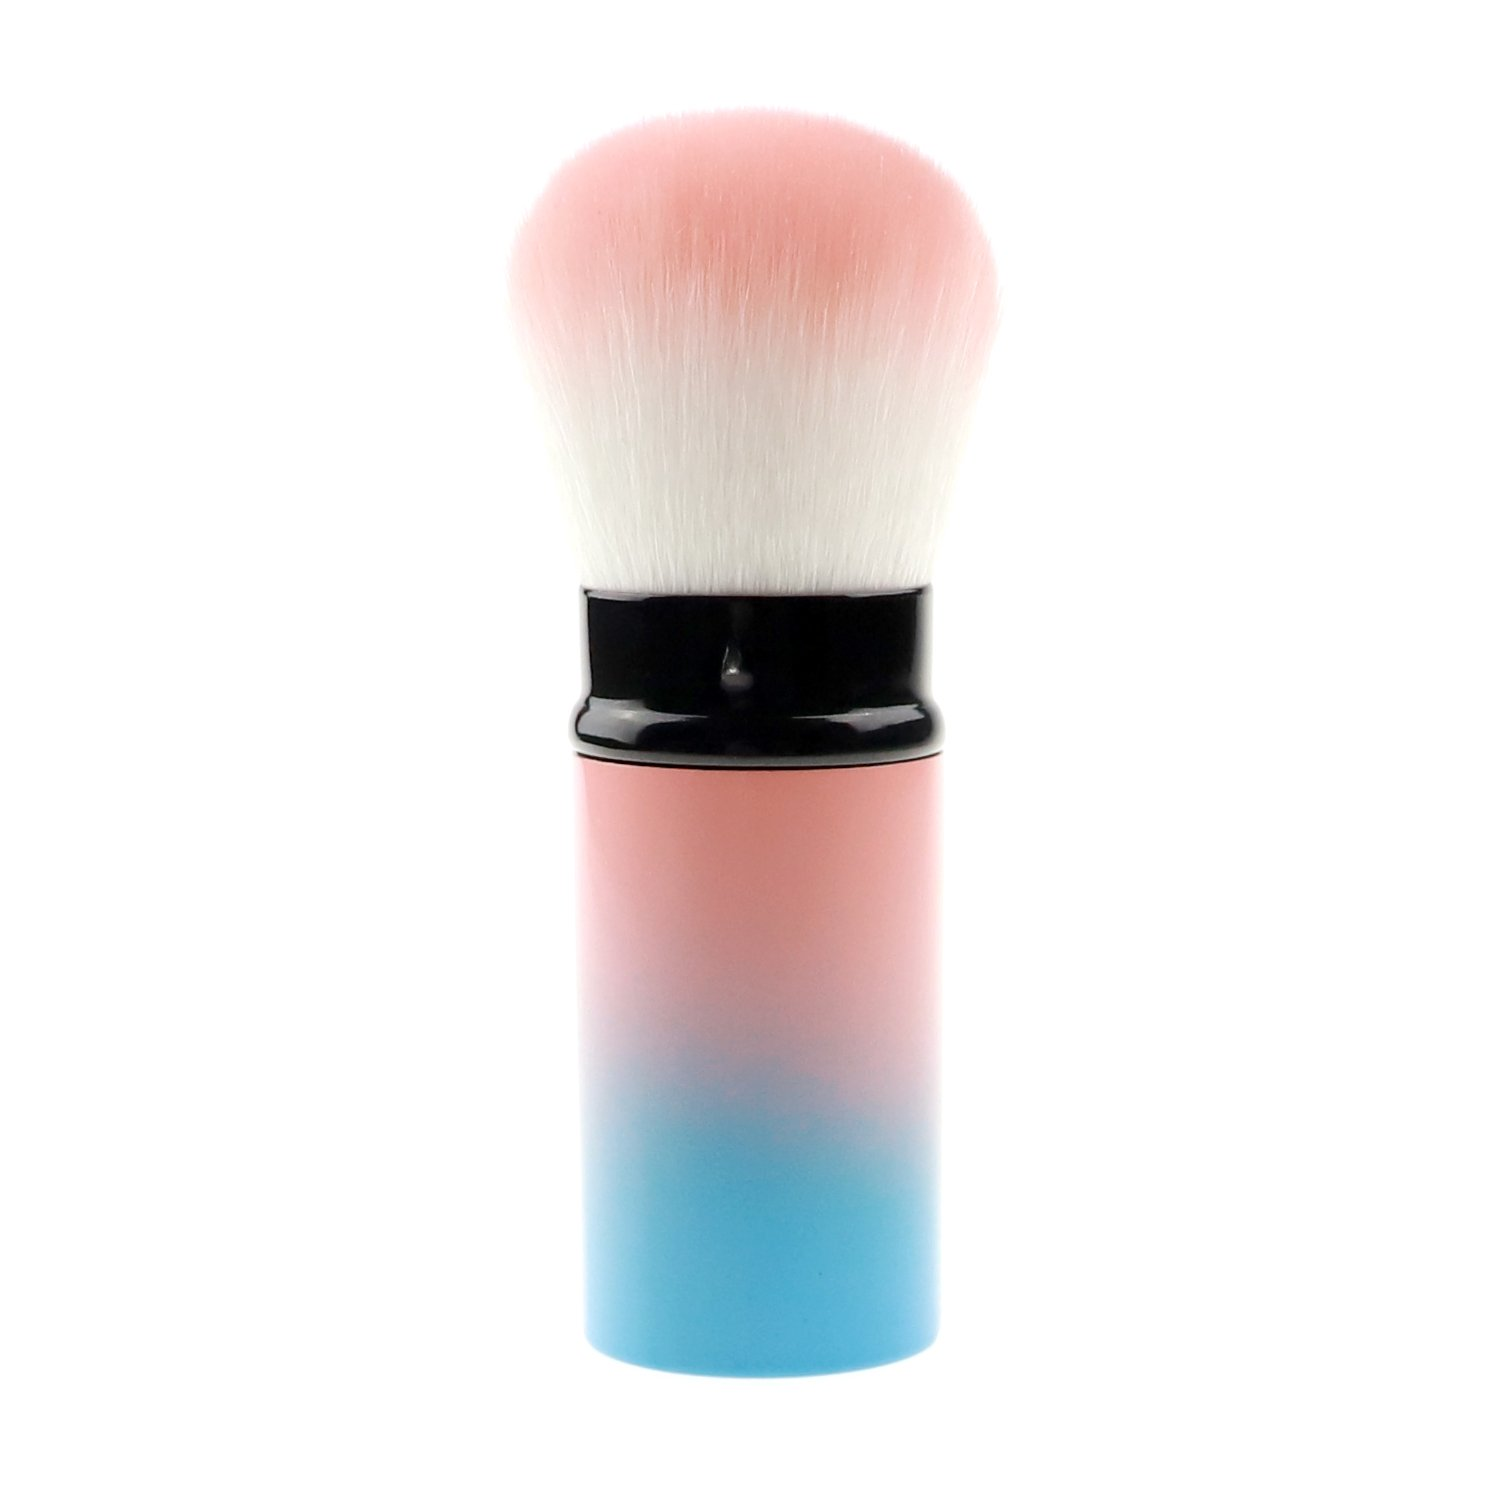 Retractable Kabuki Make Up Brush, Blush Brush Cosmetics with Premium Quality Synthetic Dense Bristles for Girls Gifts CY